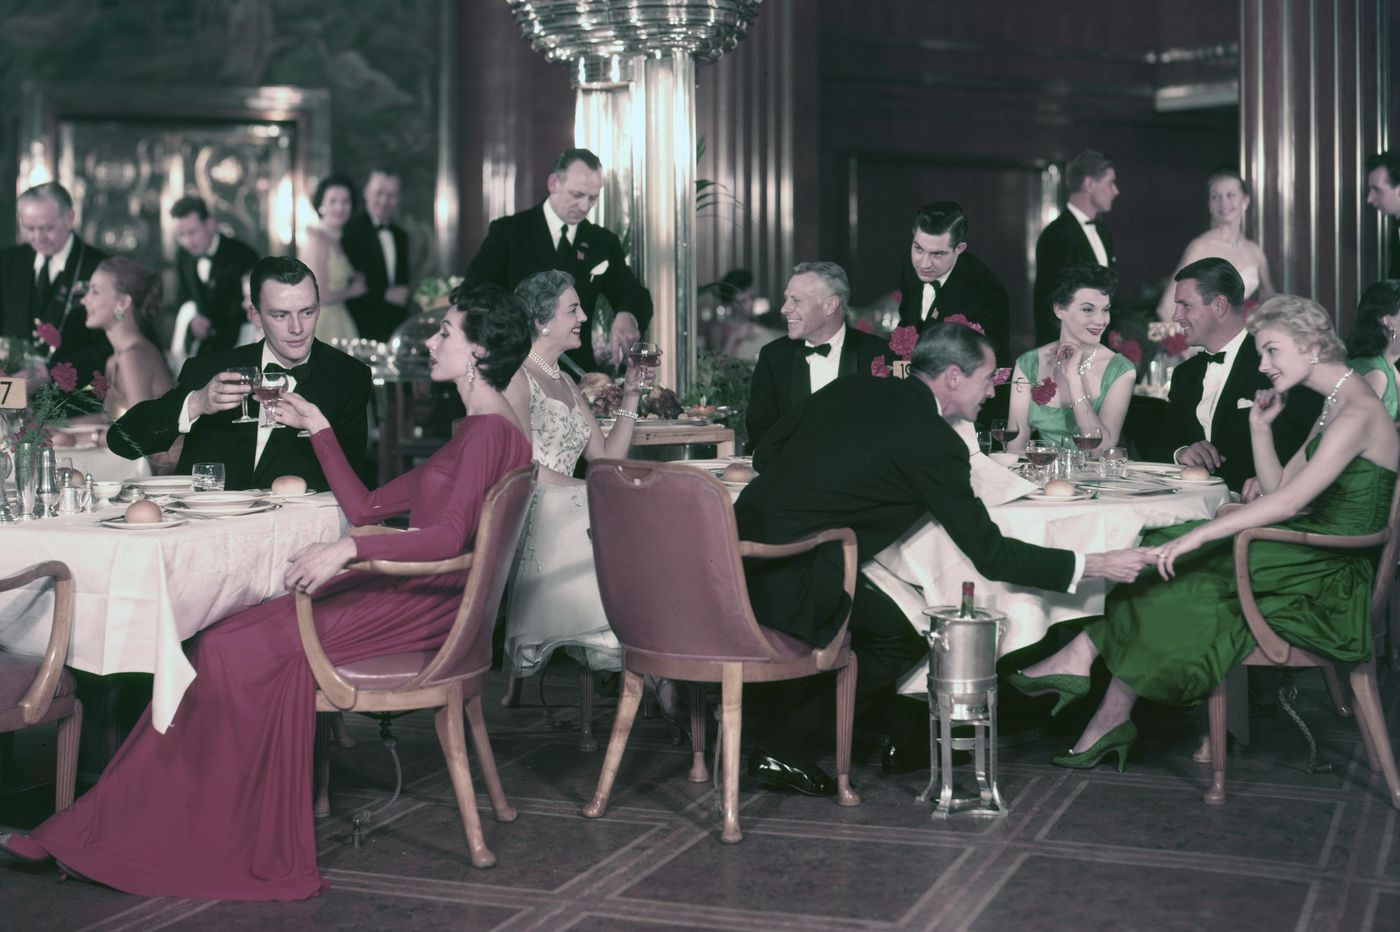 The demise of formal nights on cruises: Dress codes divide passengers